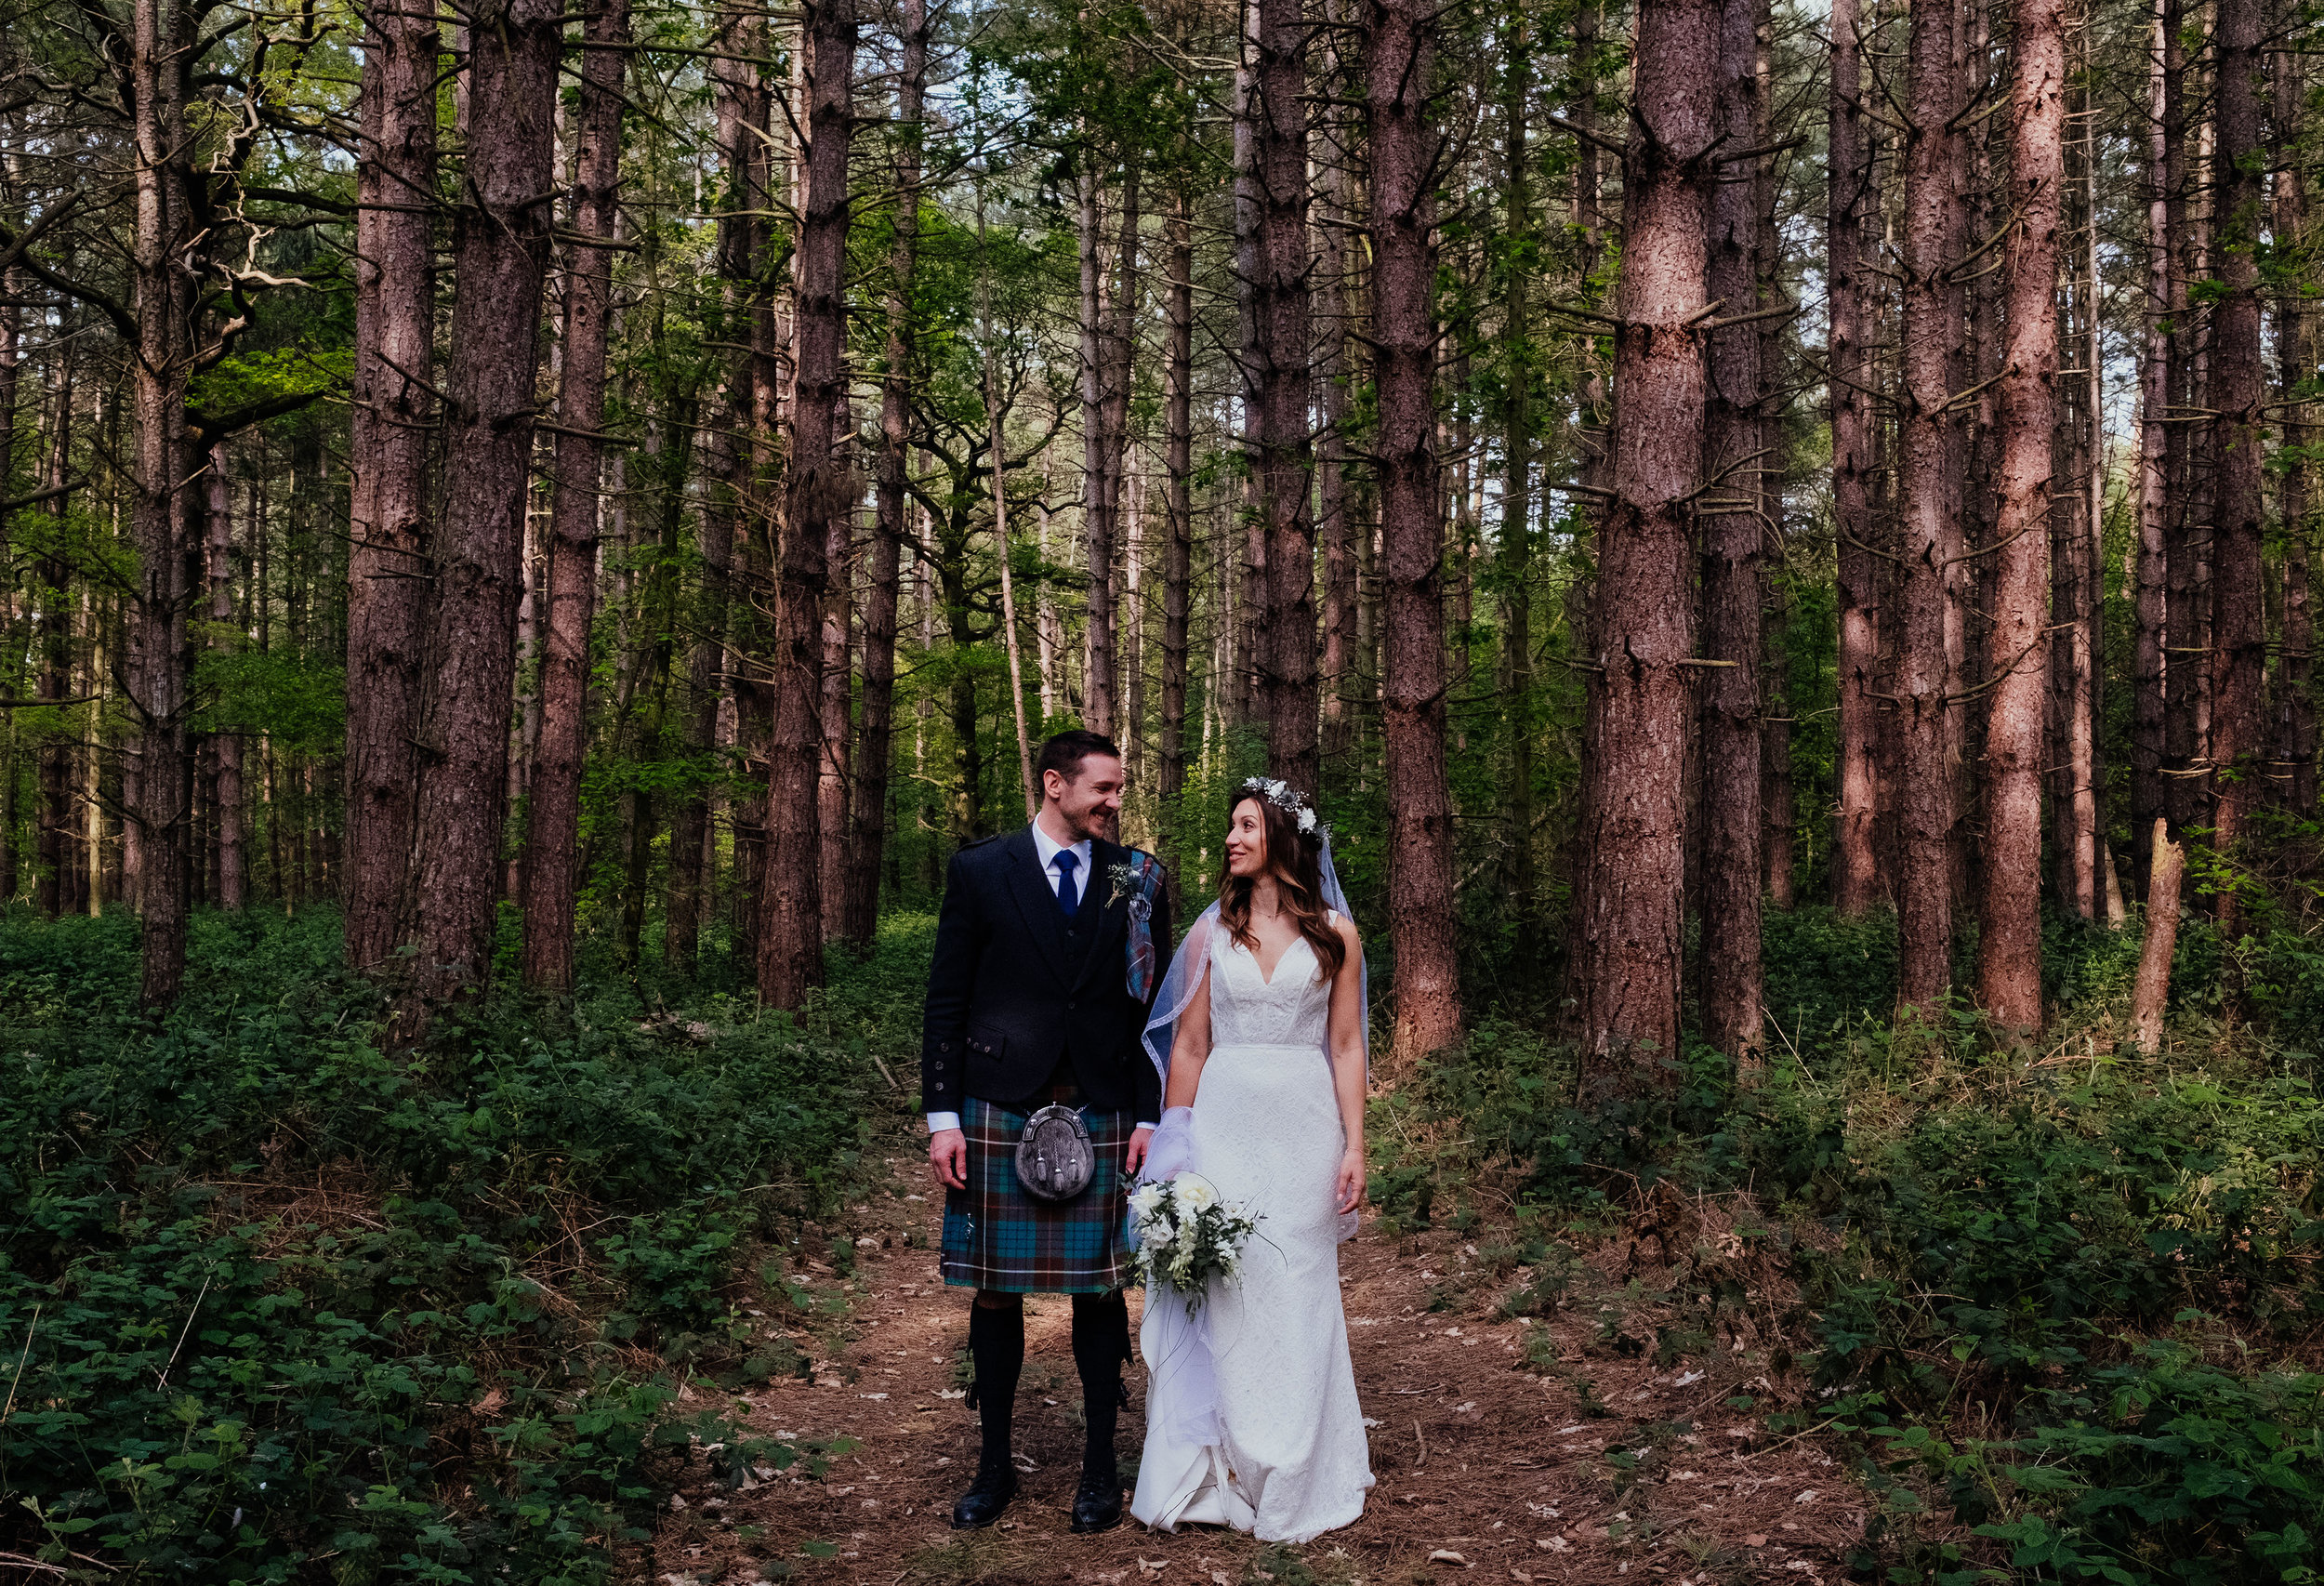 Bride and Groom wedding portrait in the woodlands at Captains Wood Barn wedding photography